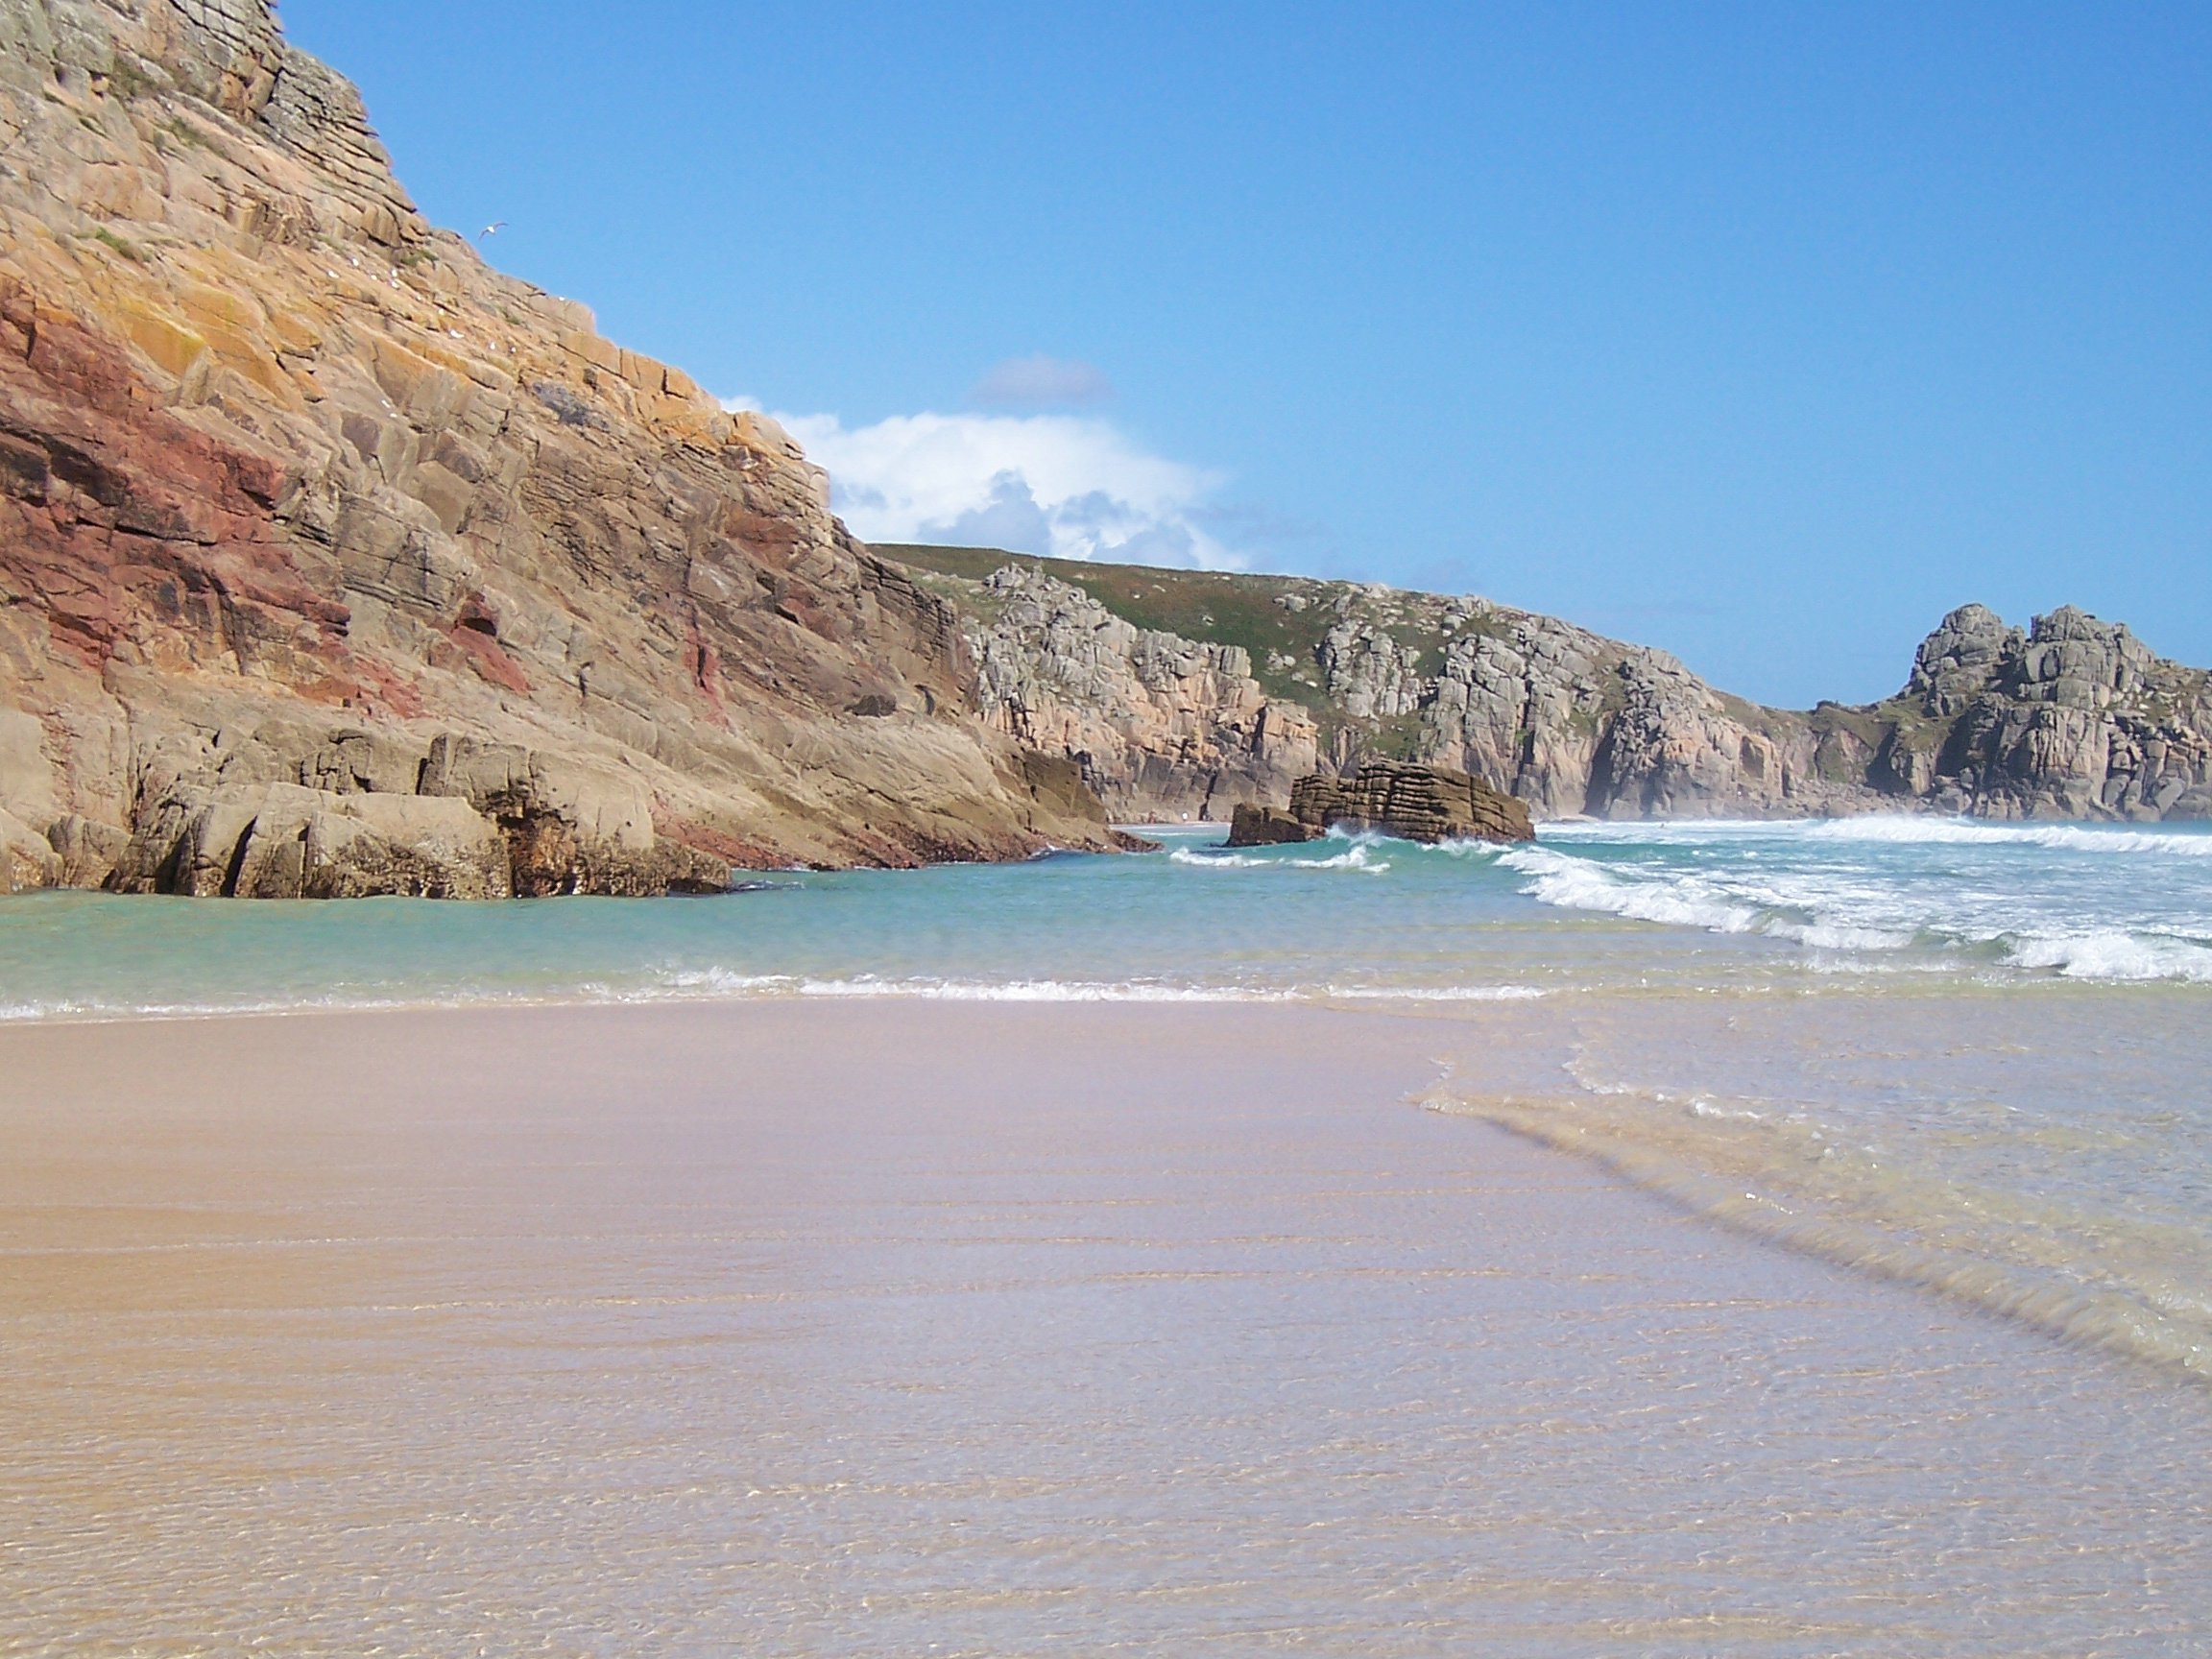 Cornwall is known for its beaches and rugged coastline.